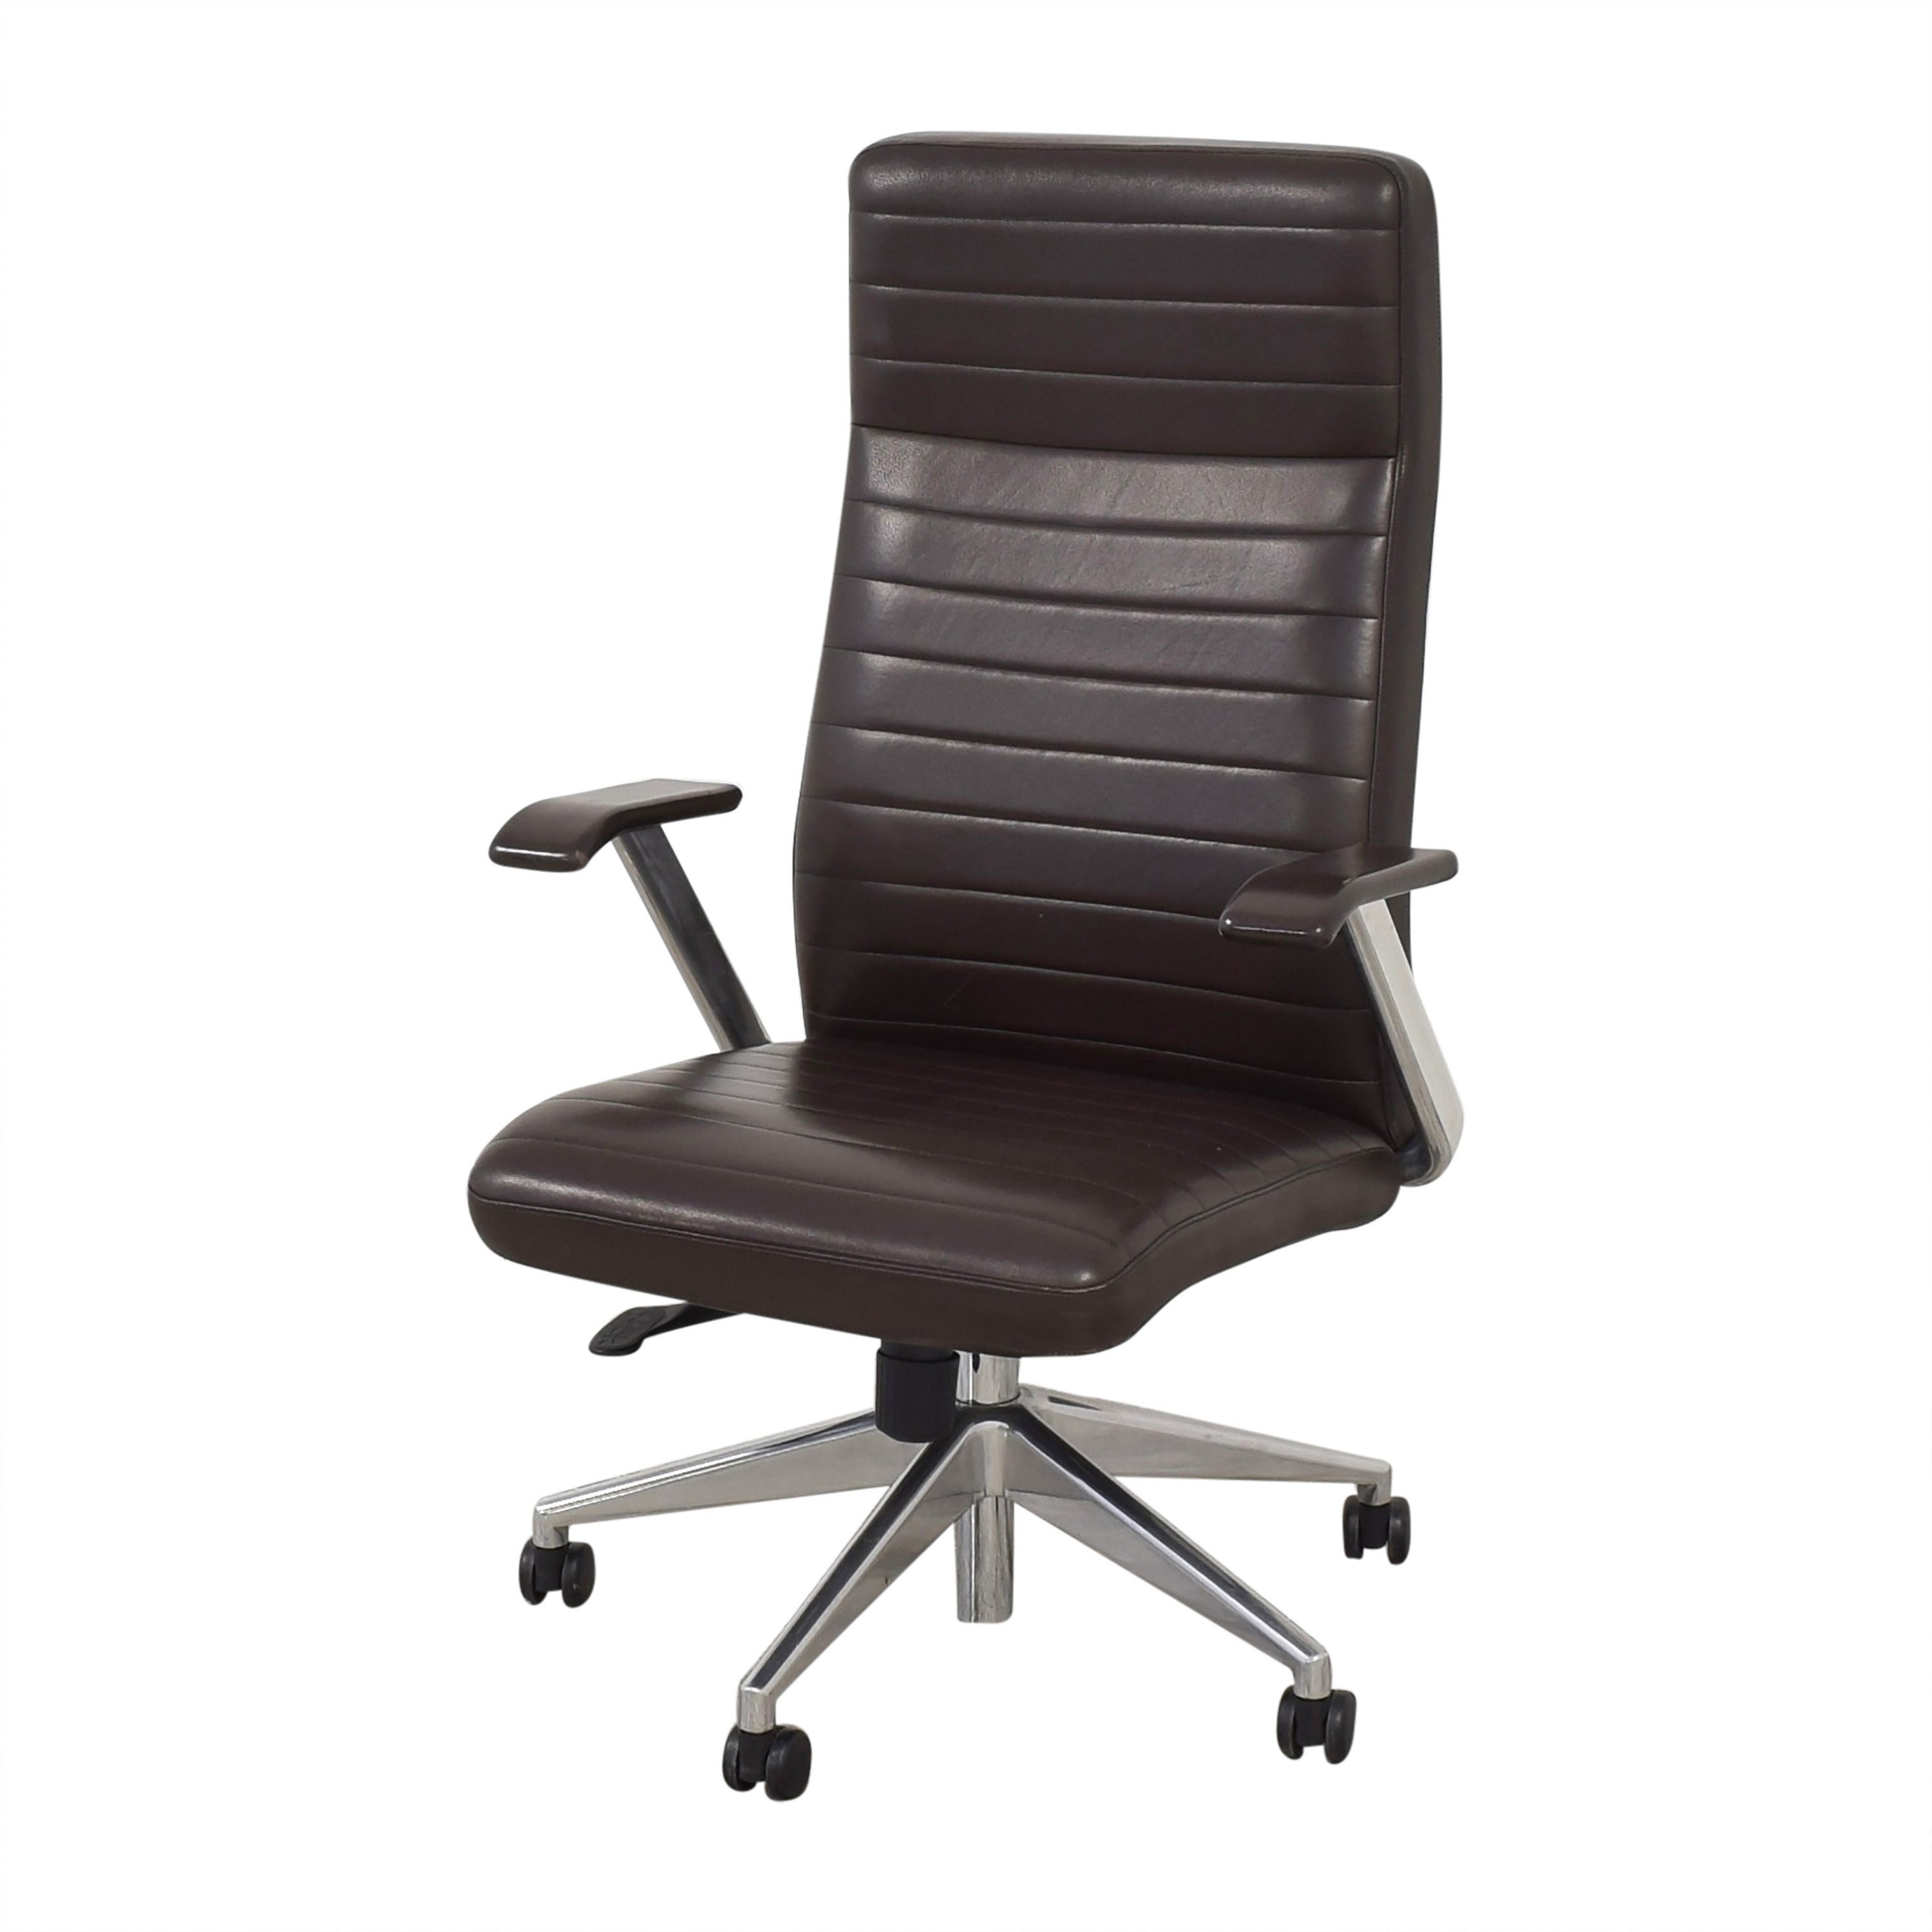 HBF HBF Mode High Back Channel Stitched Swivel Chair nj